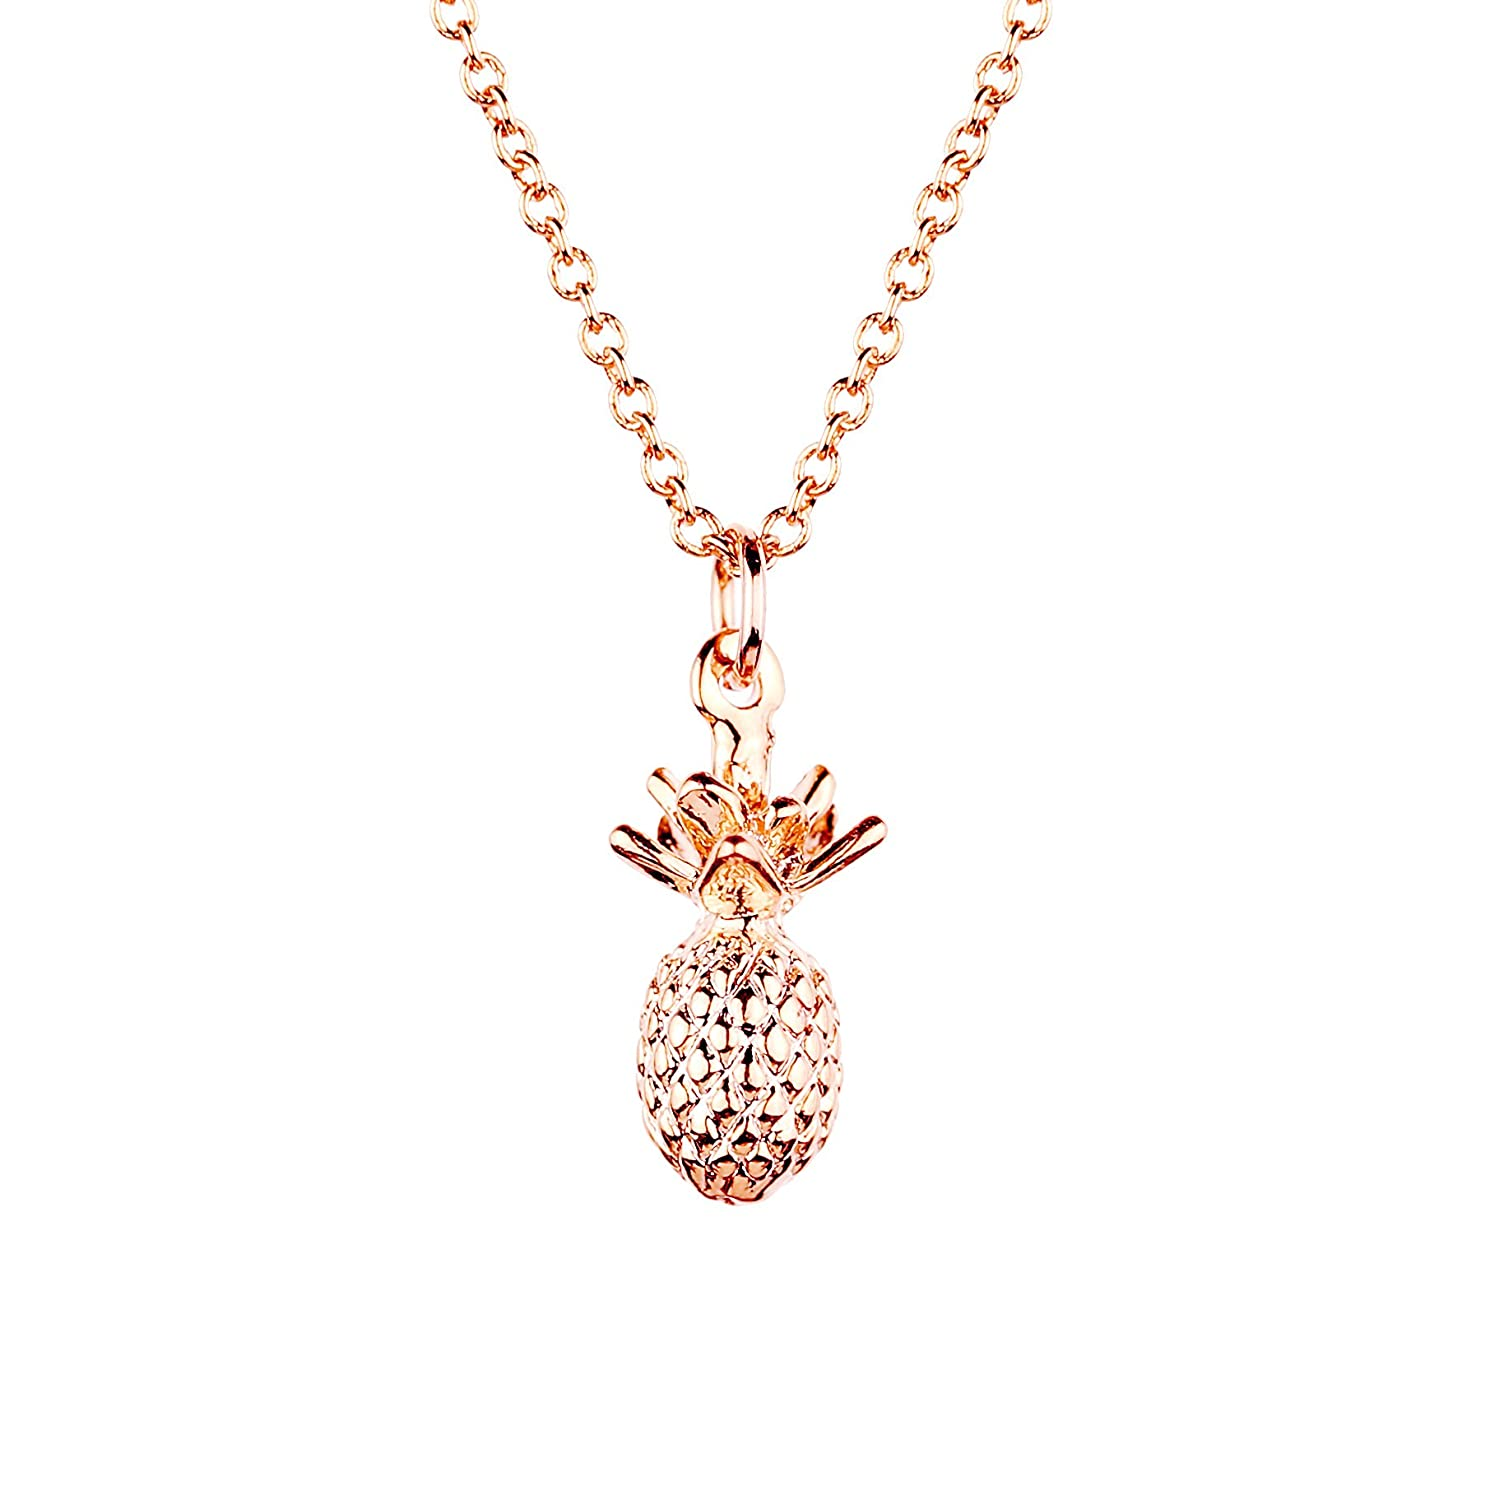 MignonandMignon Pineapple Necklace in Gold Silver Rose Gold 3D Pendant Necklace Mothers Day Jewelry Gift